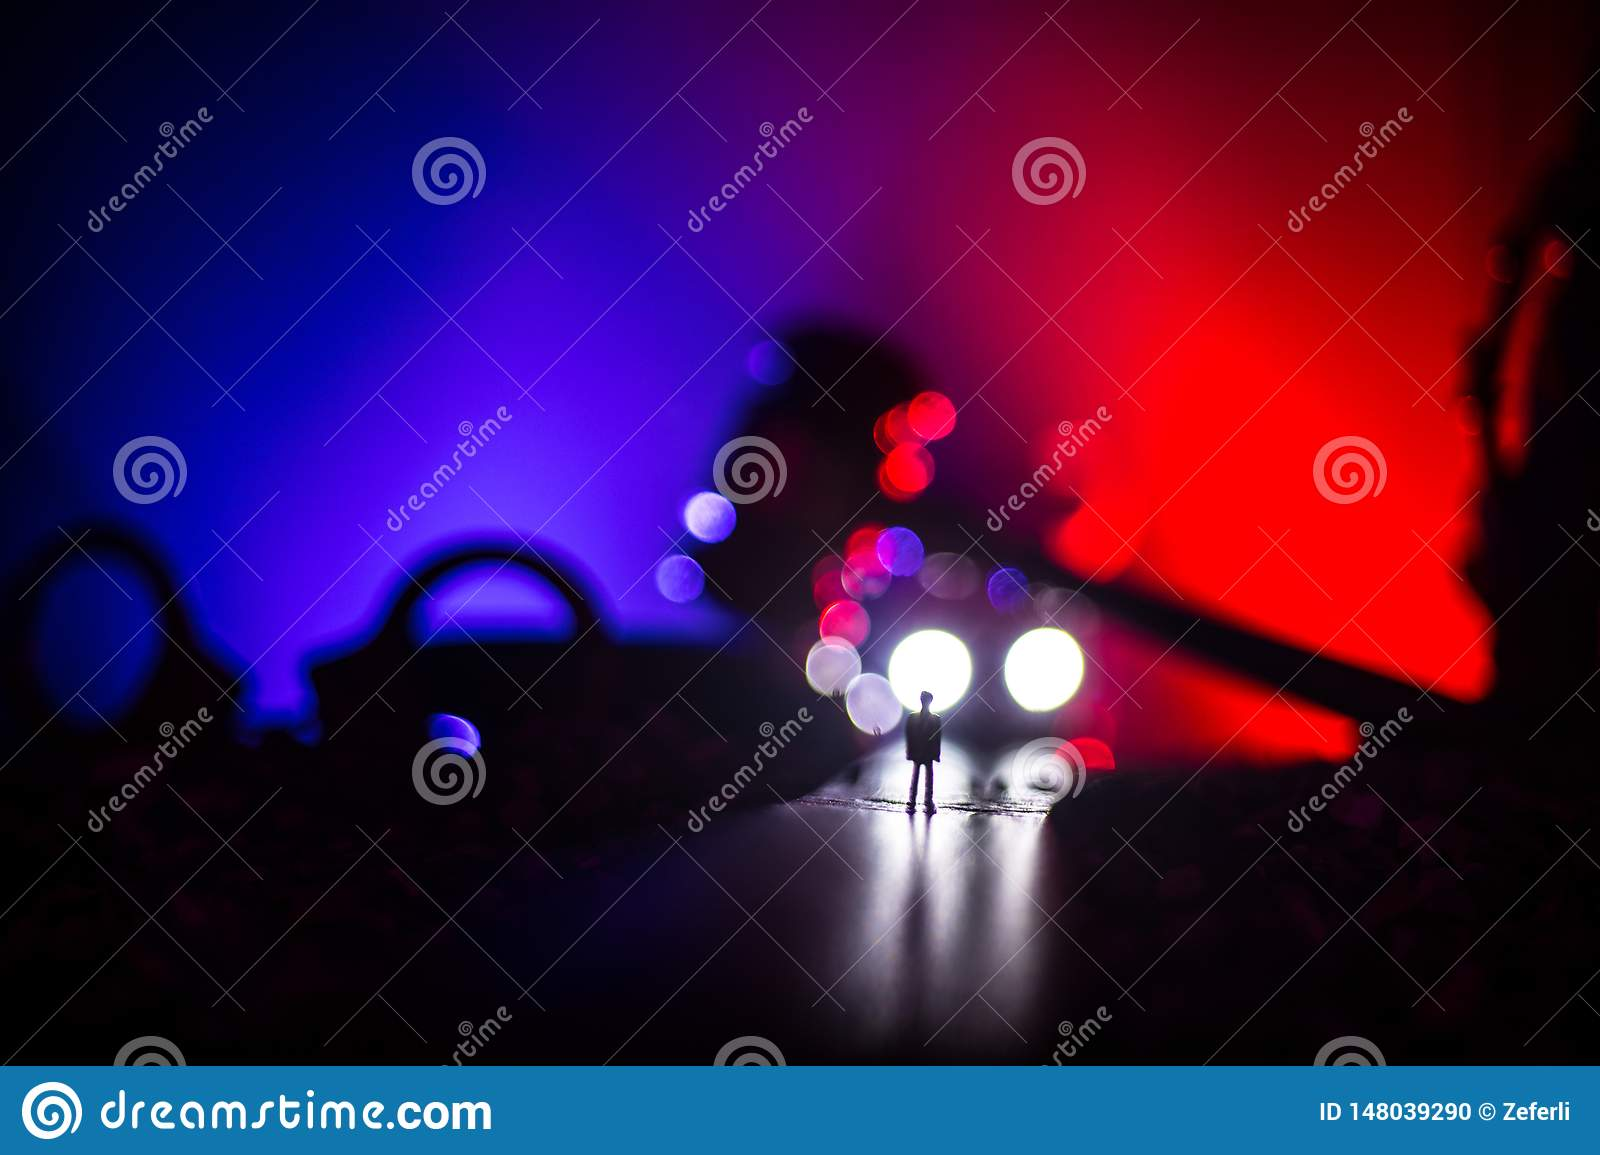 Legal Law Concept Silhouette Of Handcuffs With The Statue Of Justice On Backside With The Flashing Red And Blue Police Lights At Stock Photo Image Of Lady Handcuffs 148039290